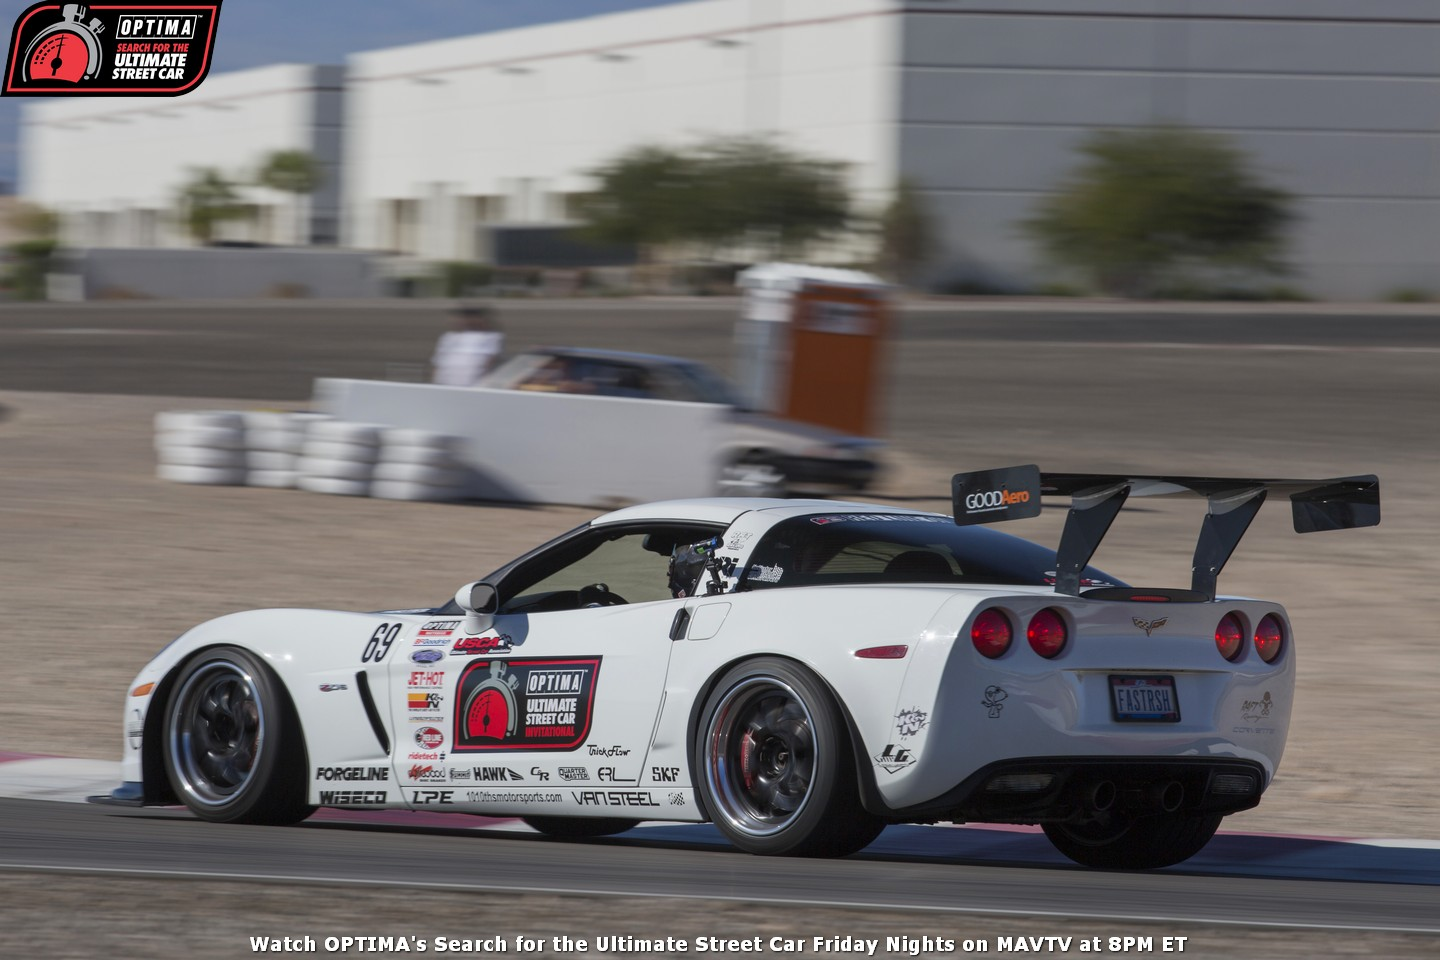 p-Todd-Rumpke-2006-Chevrolet-Corvette-OPTIMA-Ultimate-Street-Car-Invitational-2014-BFGoodrich-Hot-Lap-Challenge_93.jpg